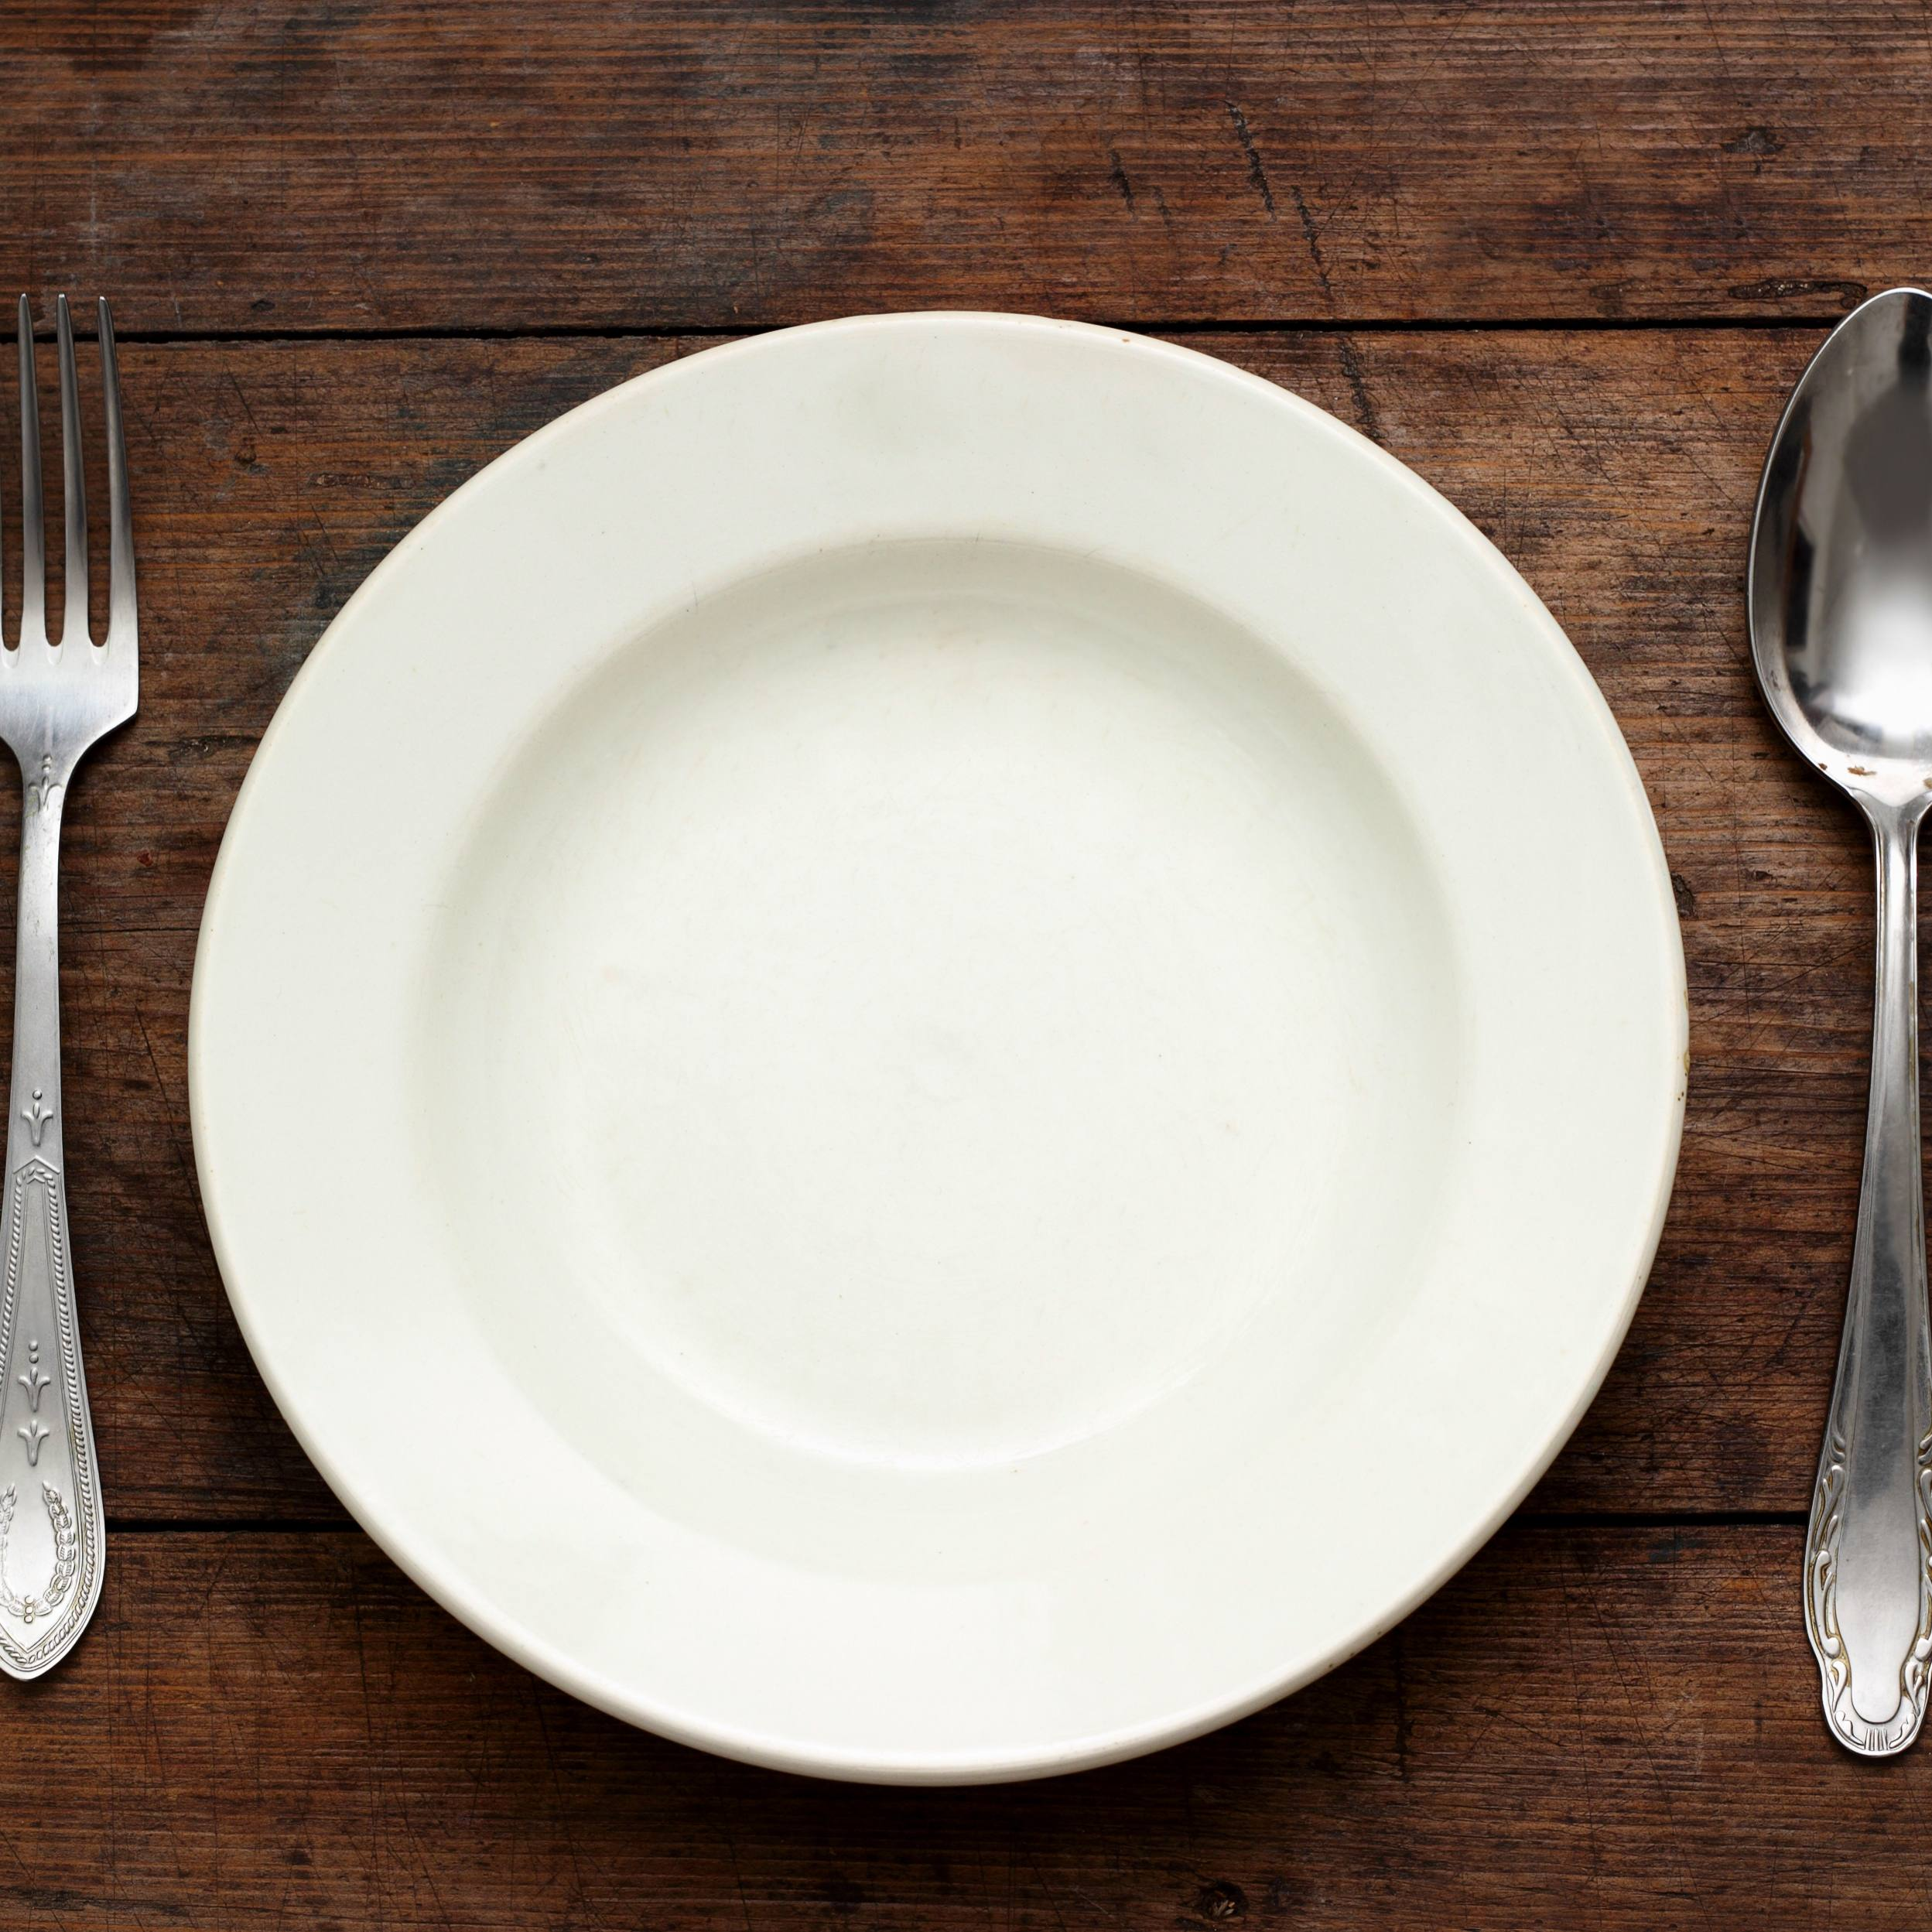 Empty plate with spoon and fork on wooden background